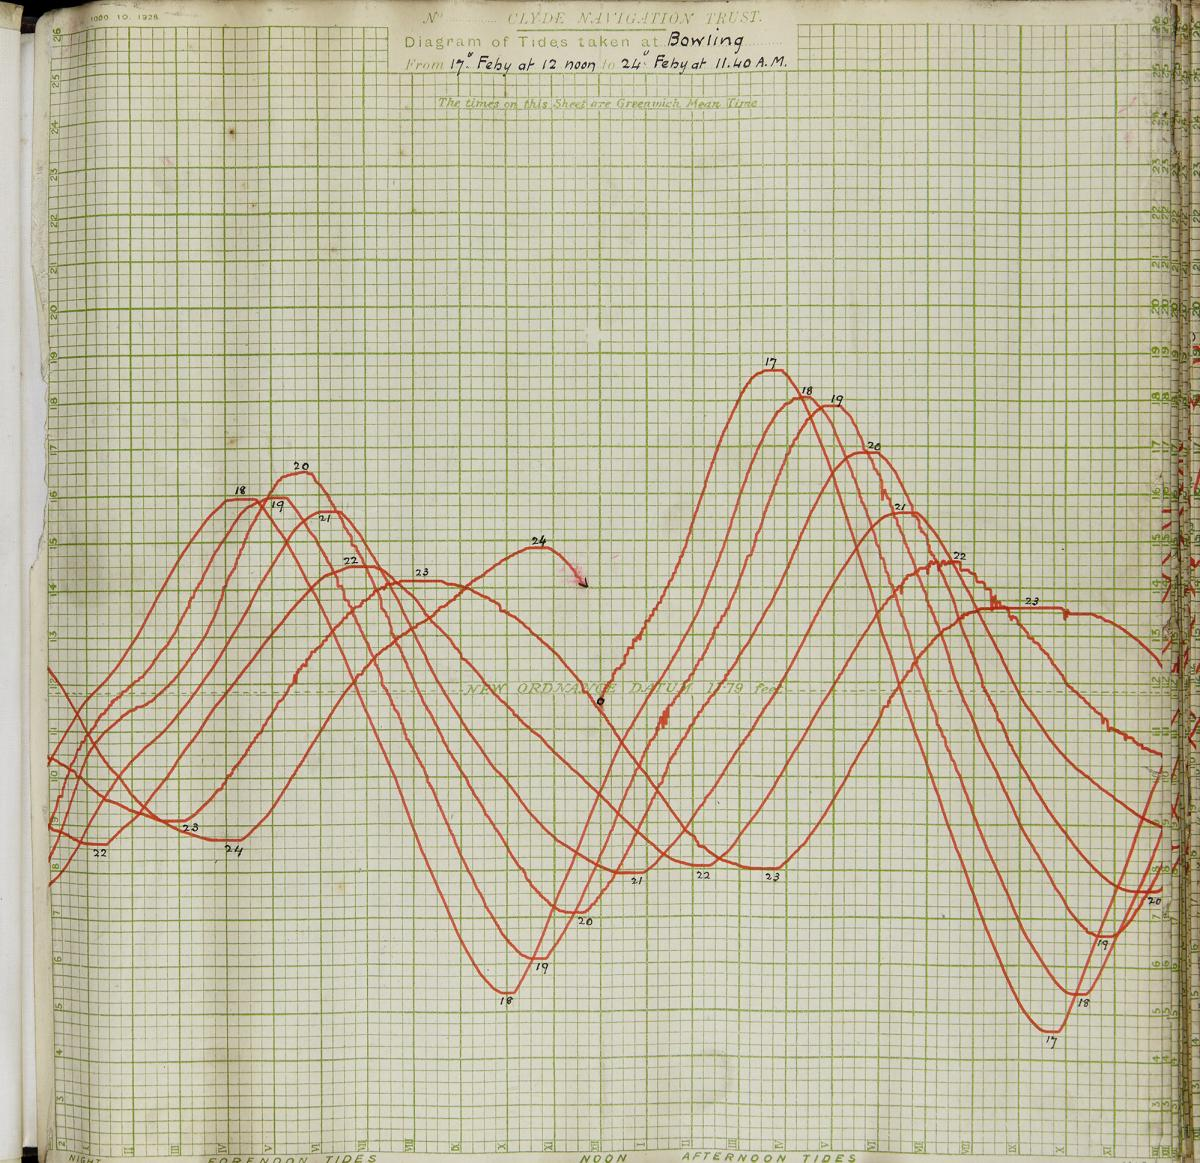 Tidal data like this 1930 chart provides a valuable baseline for understanding how fast oceans are rising around the globe today.